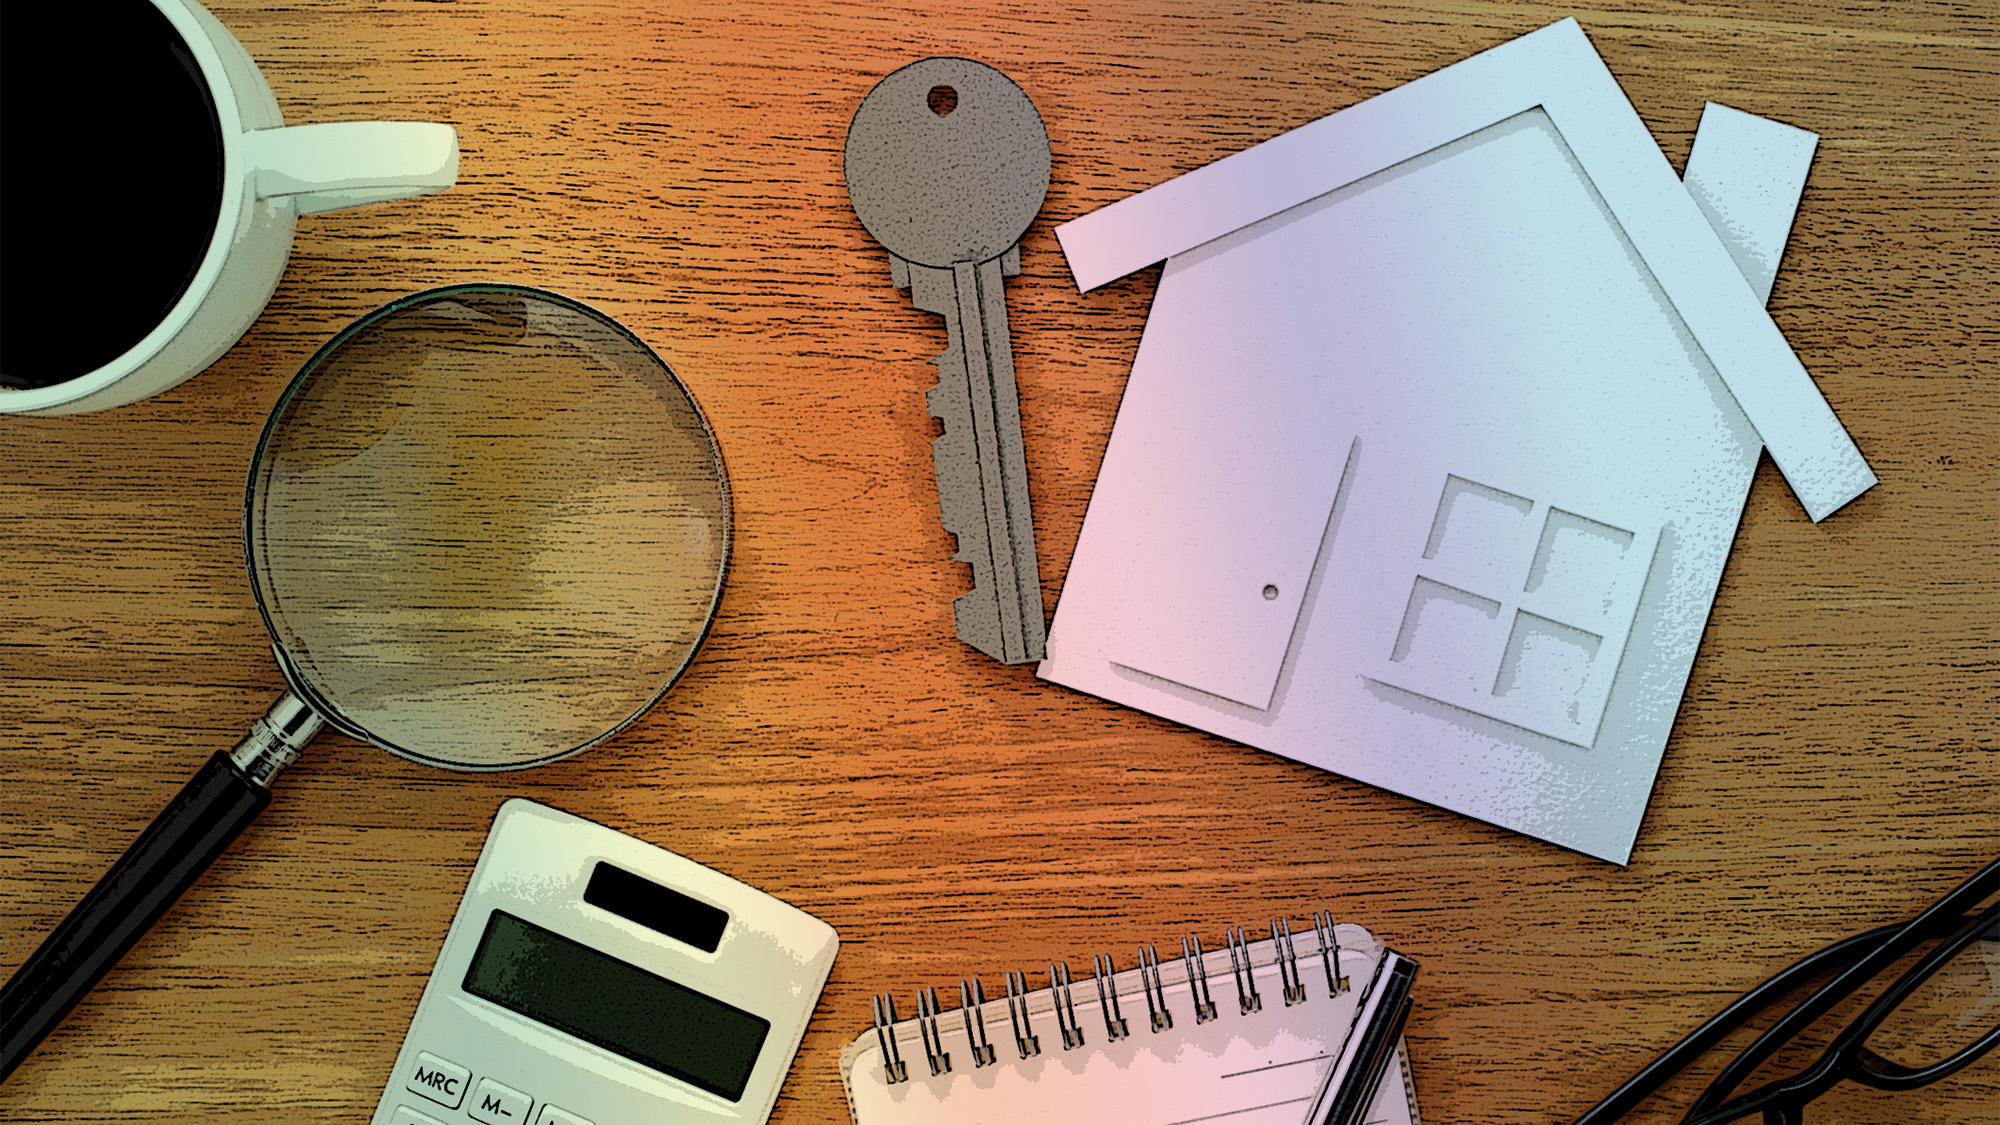 Some Home Buyers, Refi Seekers Don't Need Appraisals: Should They Get Them Anyway?